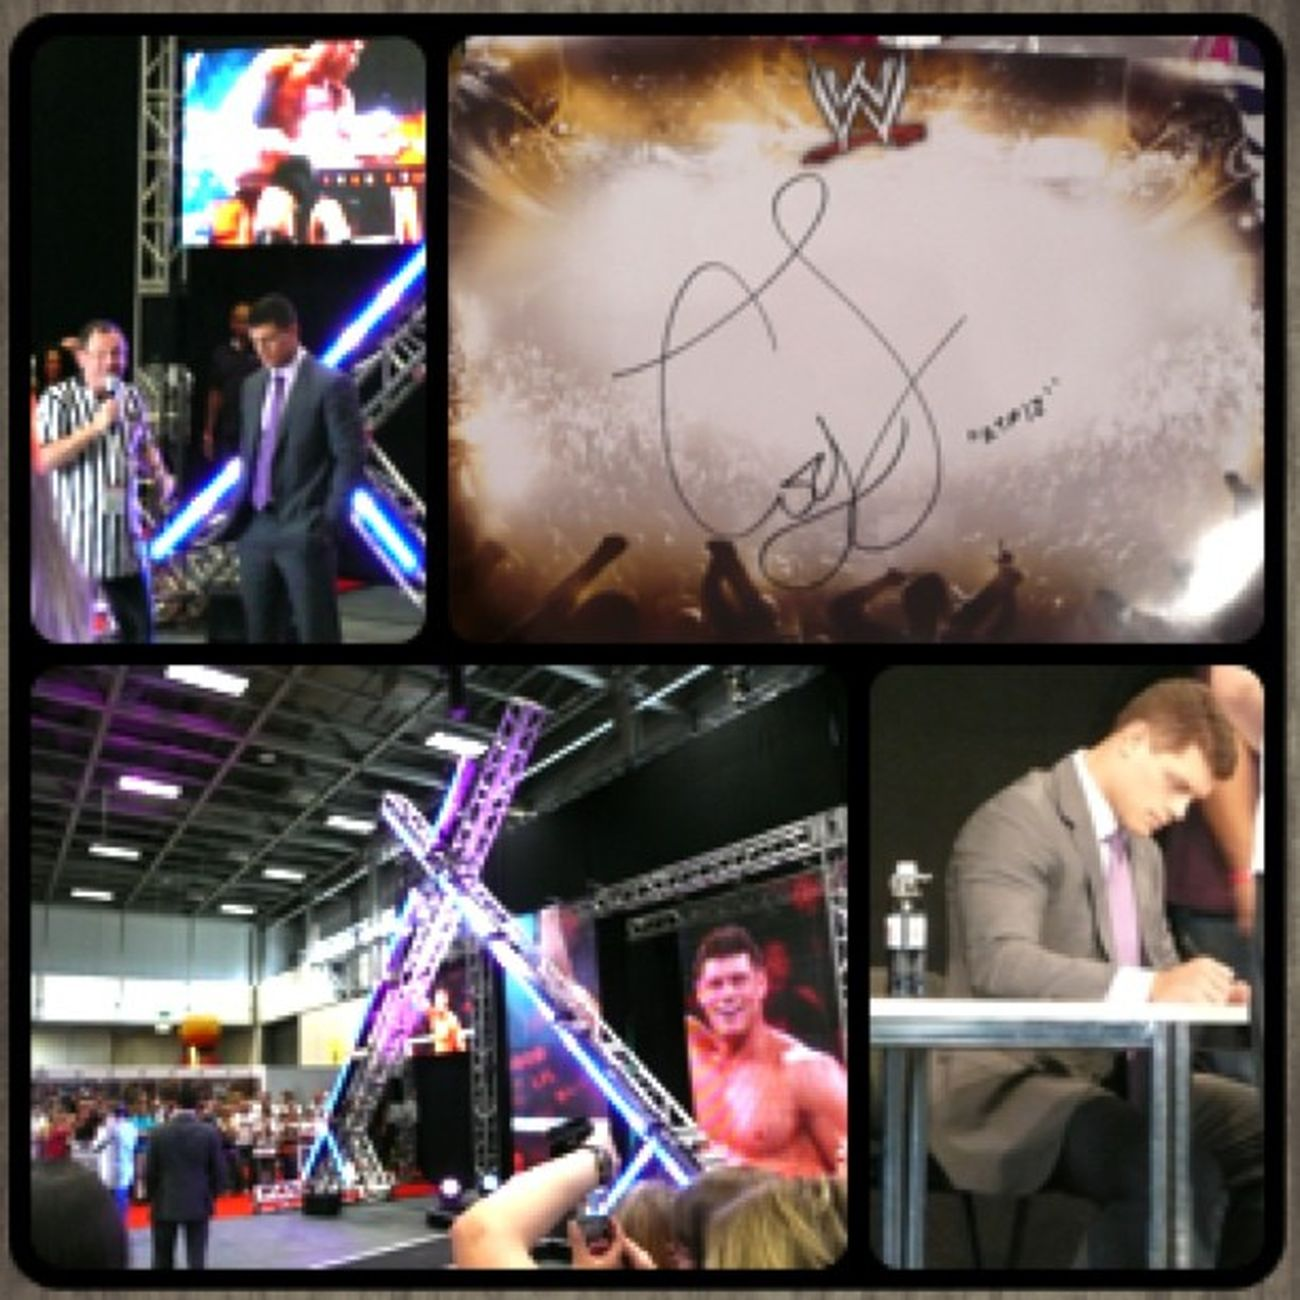 Cody Rhodes in Berlin Berlin Wwe Autograph Wweuniverse Dashing Smackdown Codyrhodes Youmesse